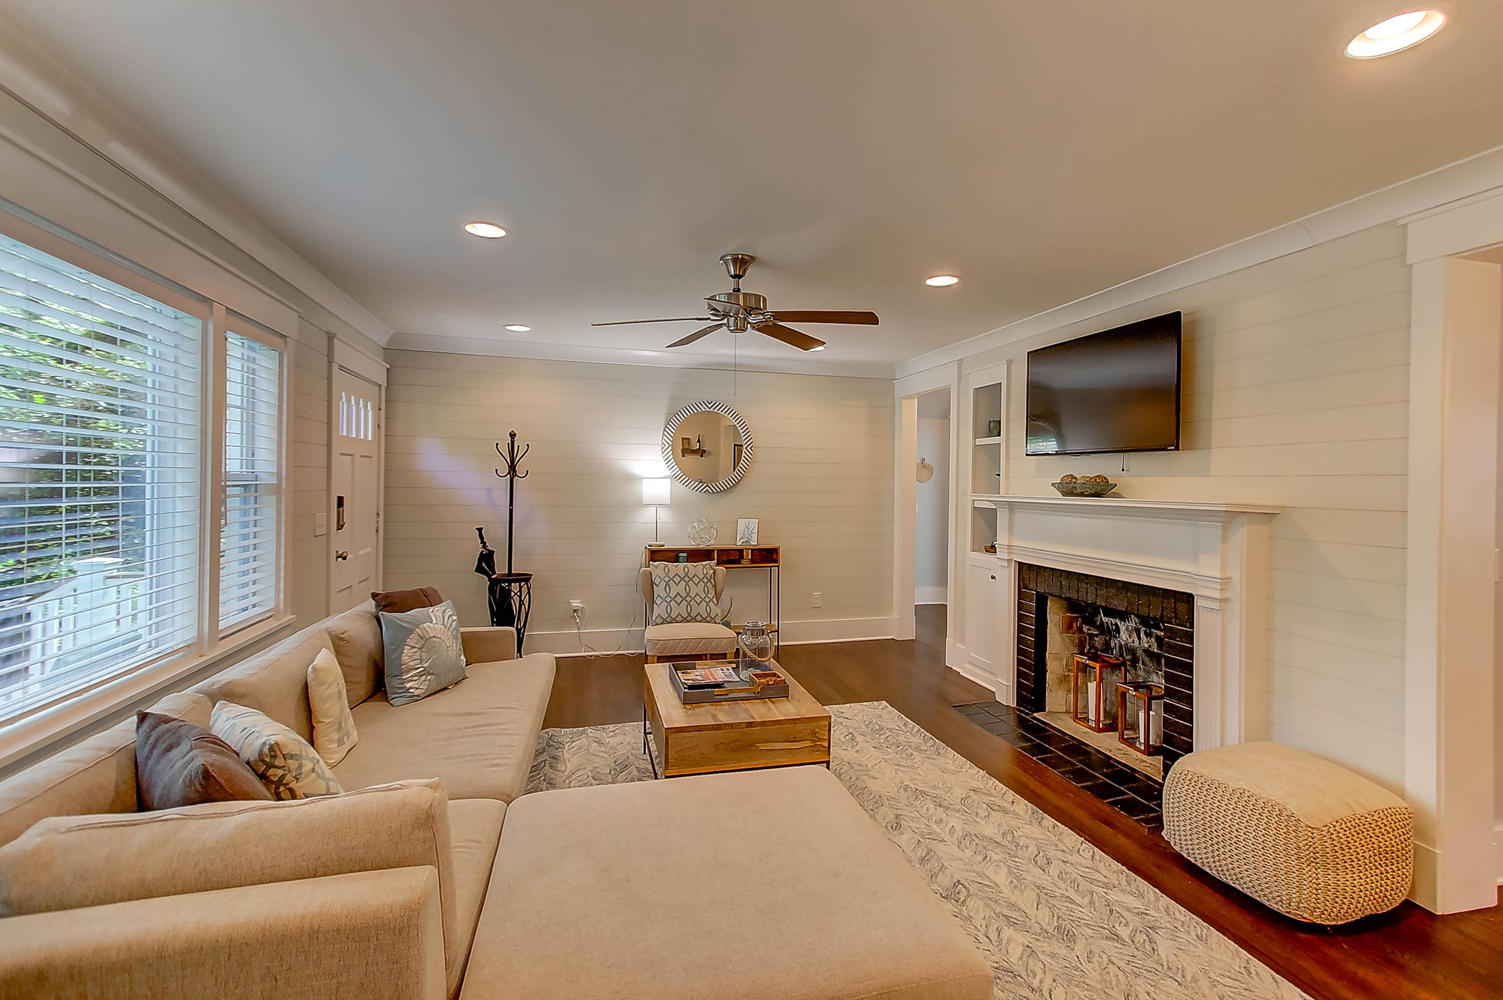 Riverland Terrace Homes For Sale - 2138 Wappoo, Charleston, SC - 0